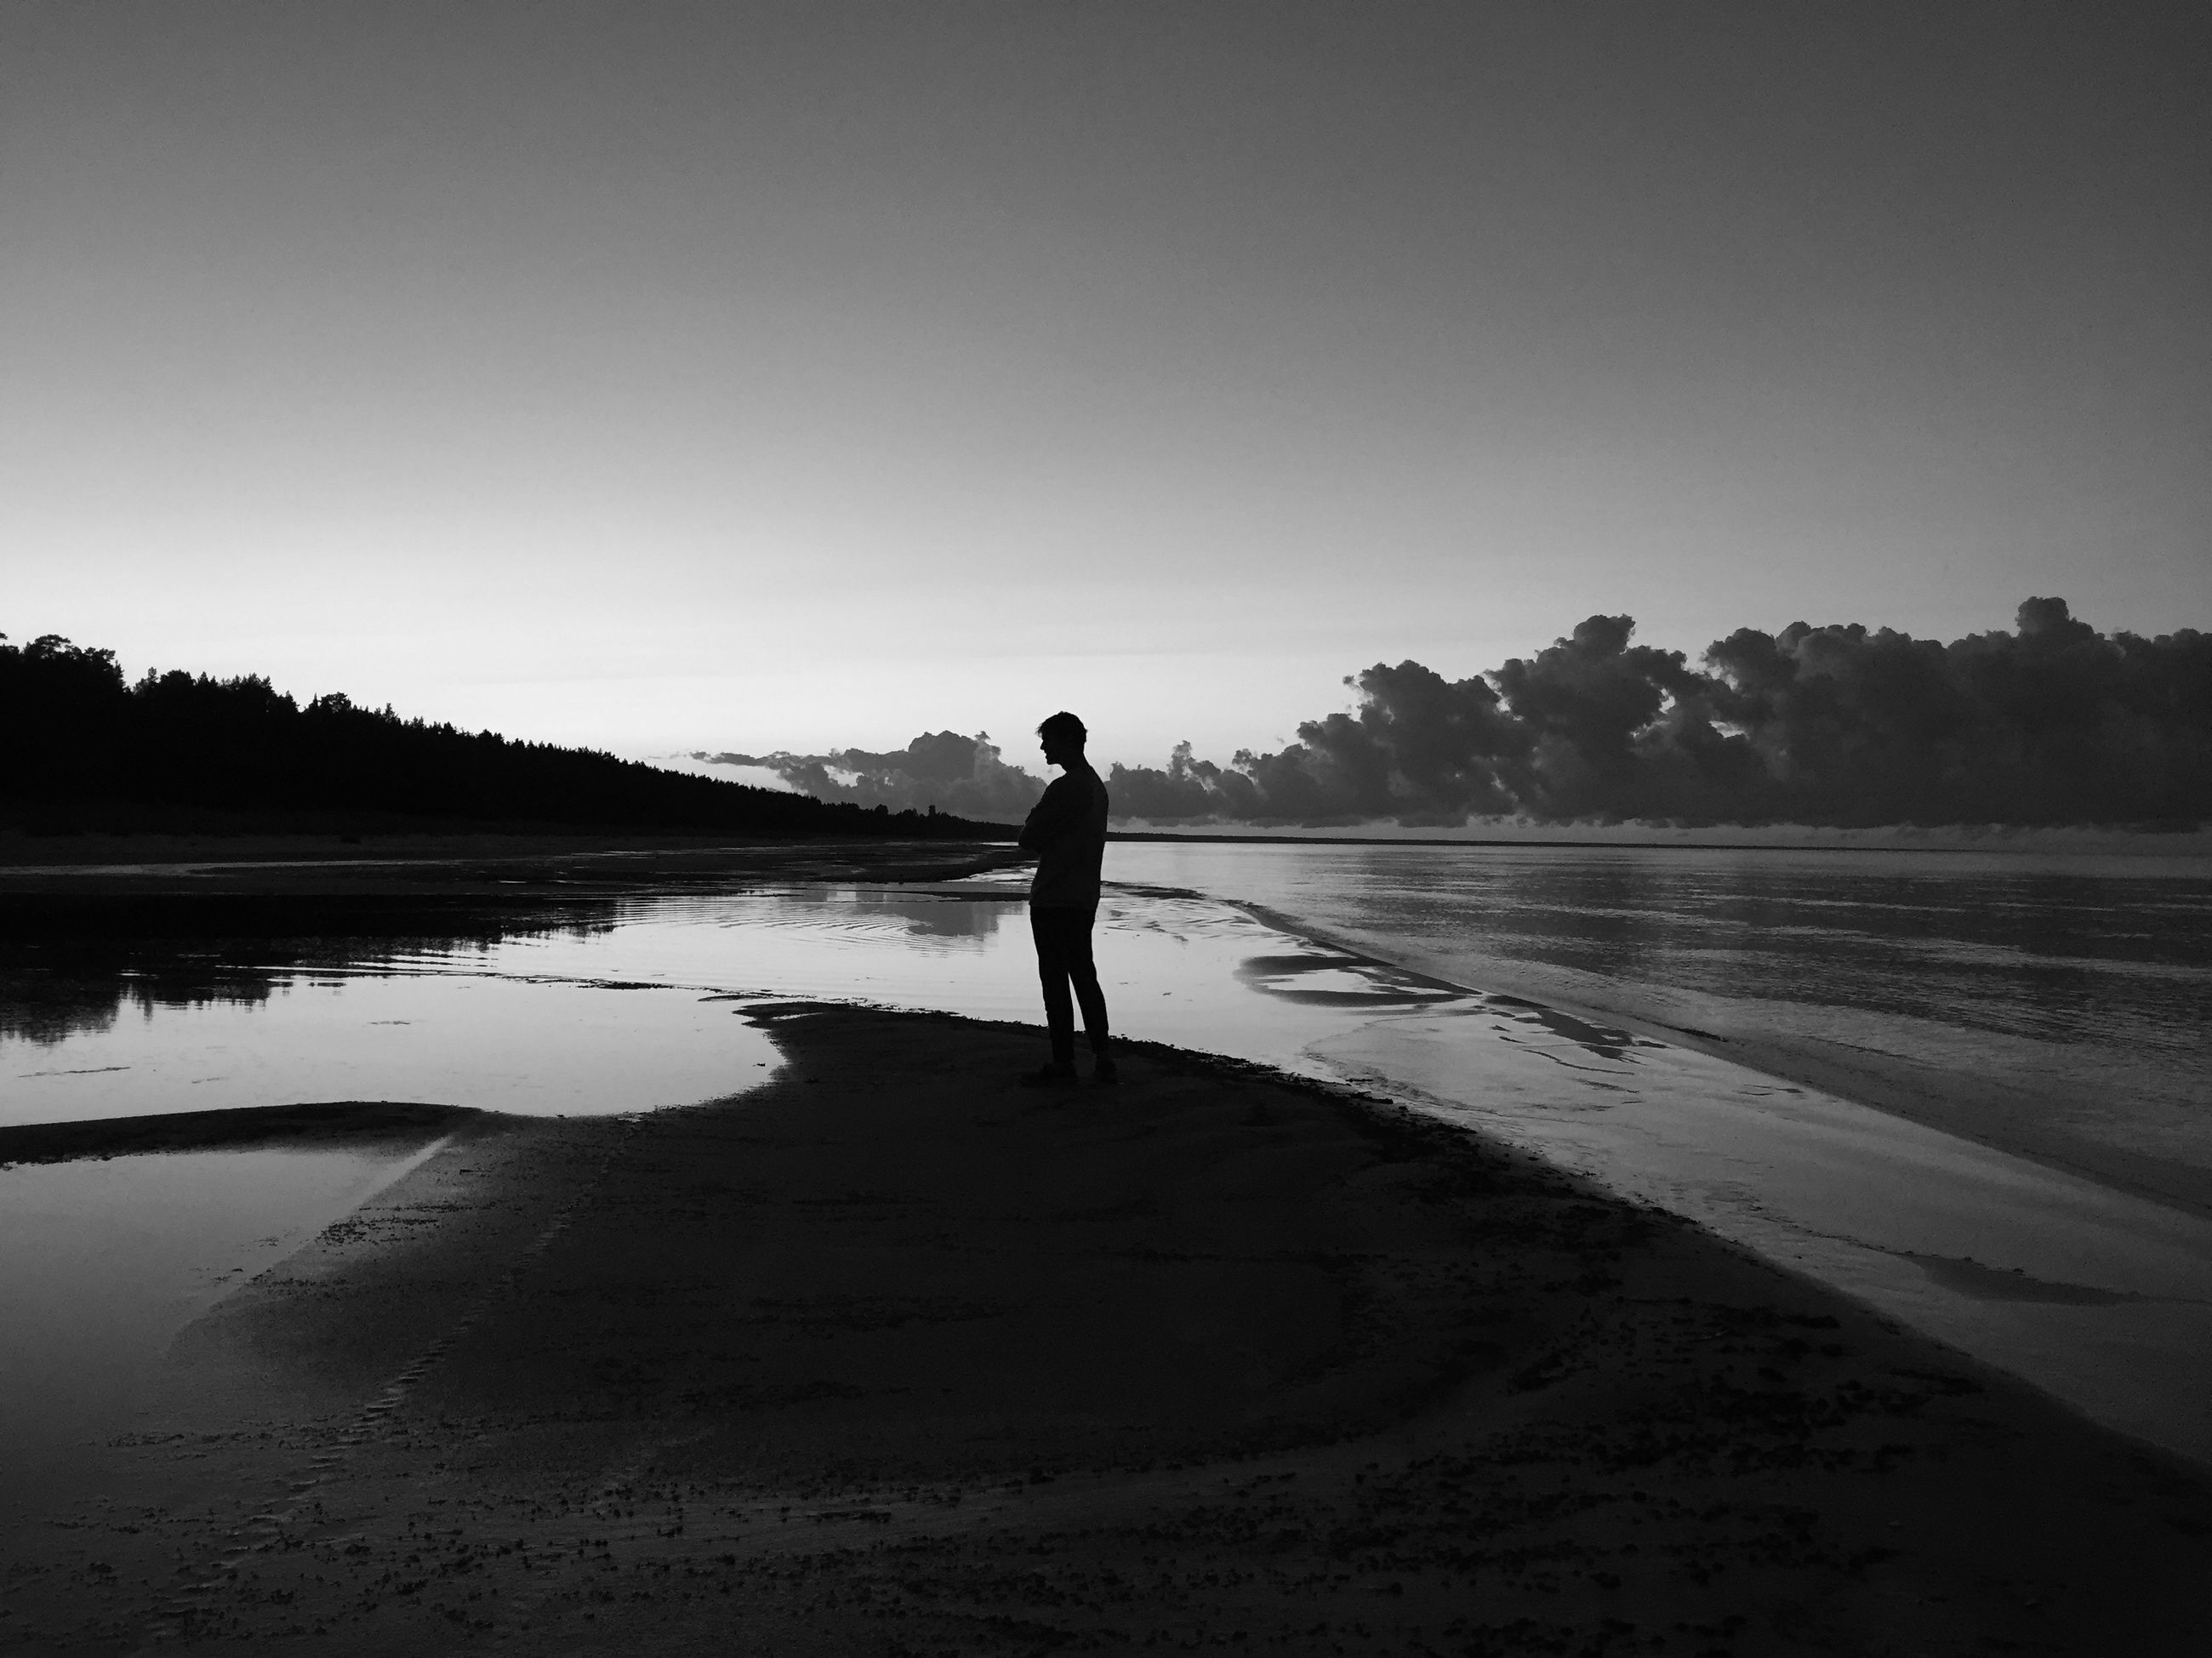 beach, water, full length, tranquility, clear sky, sand, tranquil scene, leisure activity, shore, standing, lifestyles, copy space, rear view, silhouette, scenics, walking, sea, beauty in nature